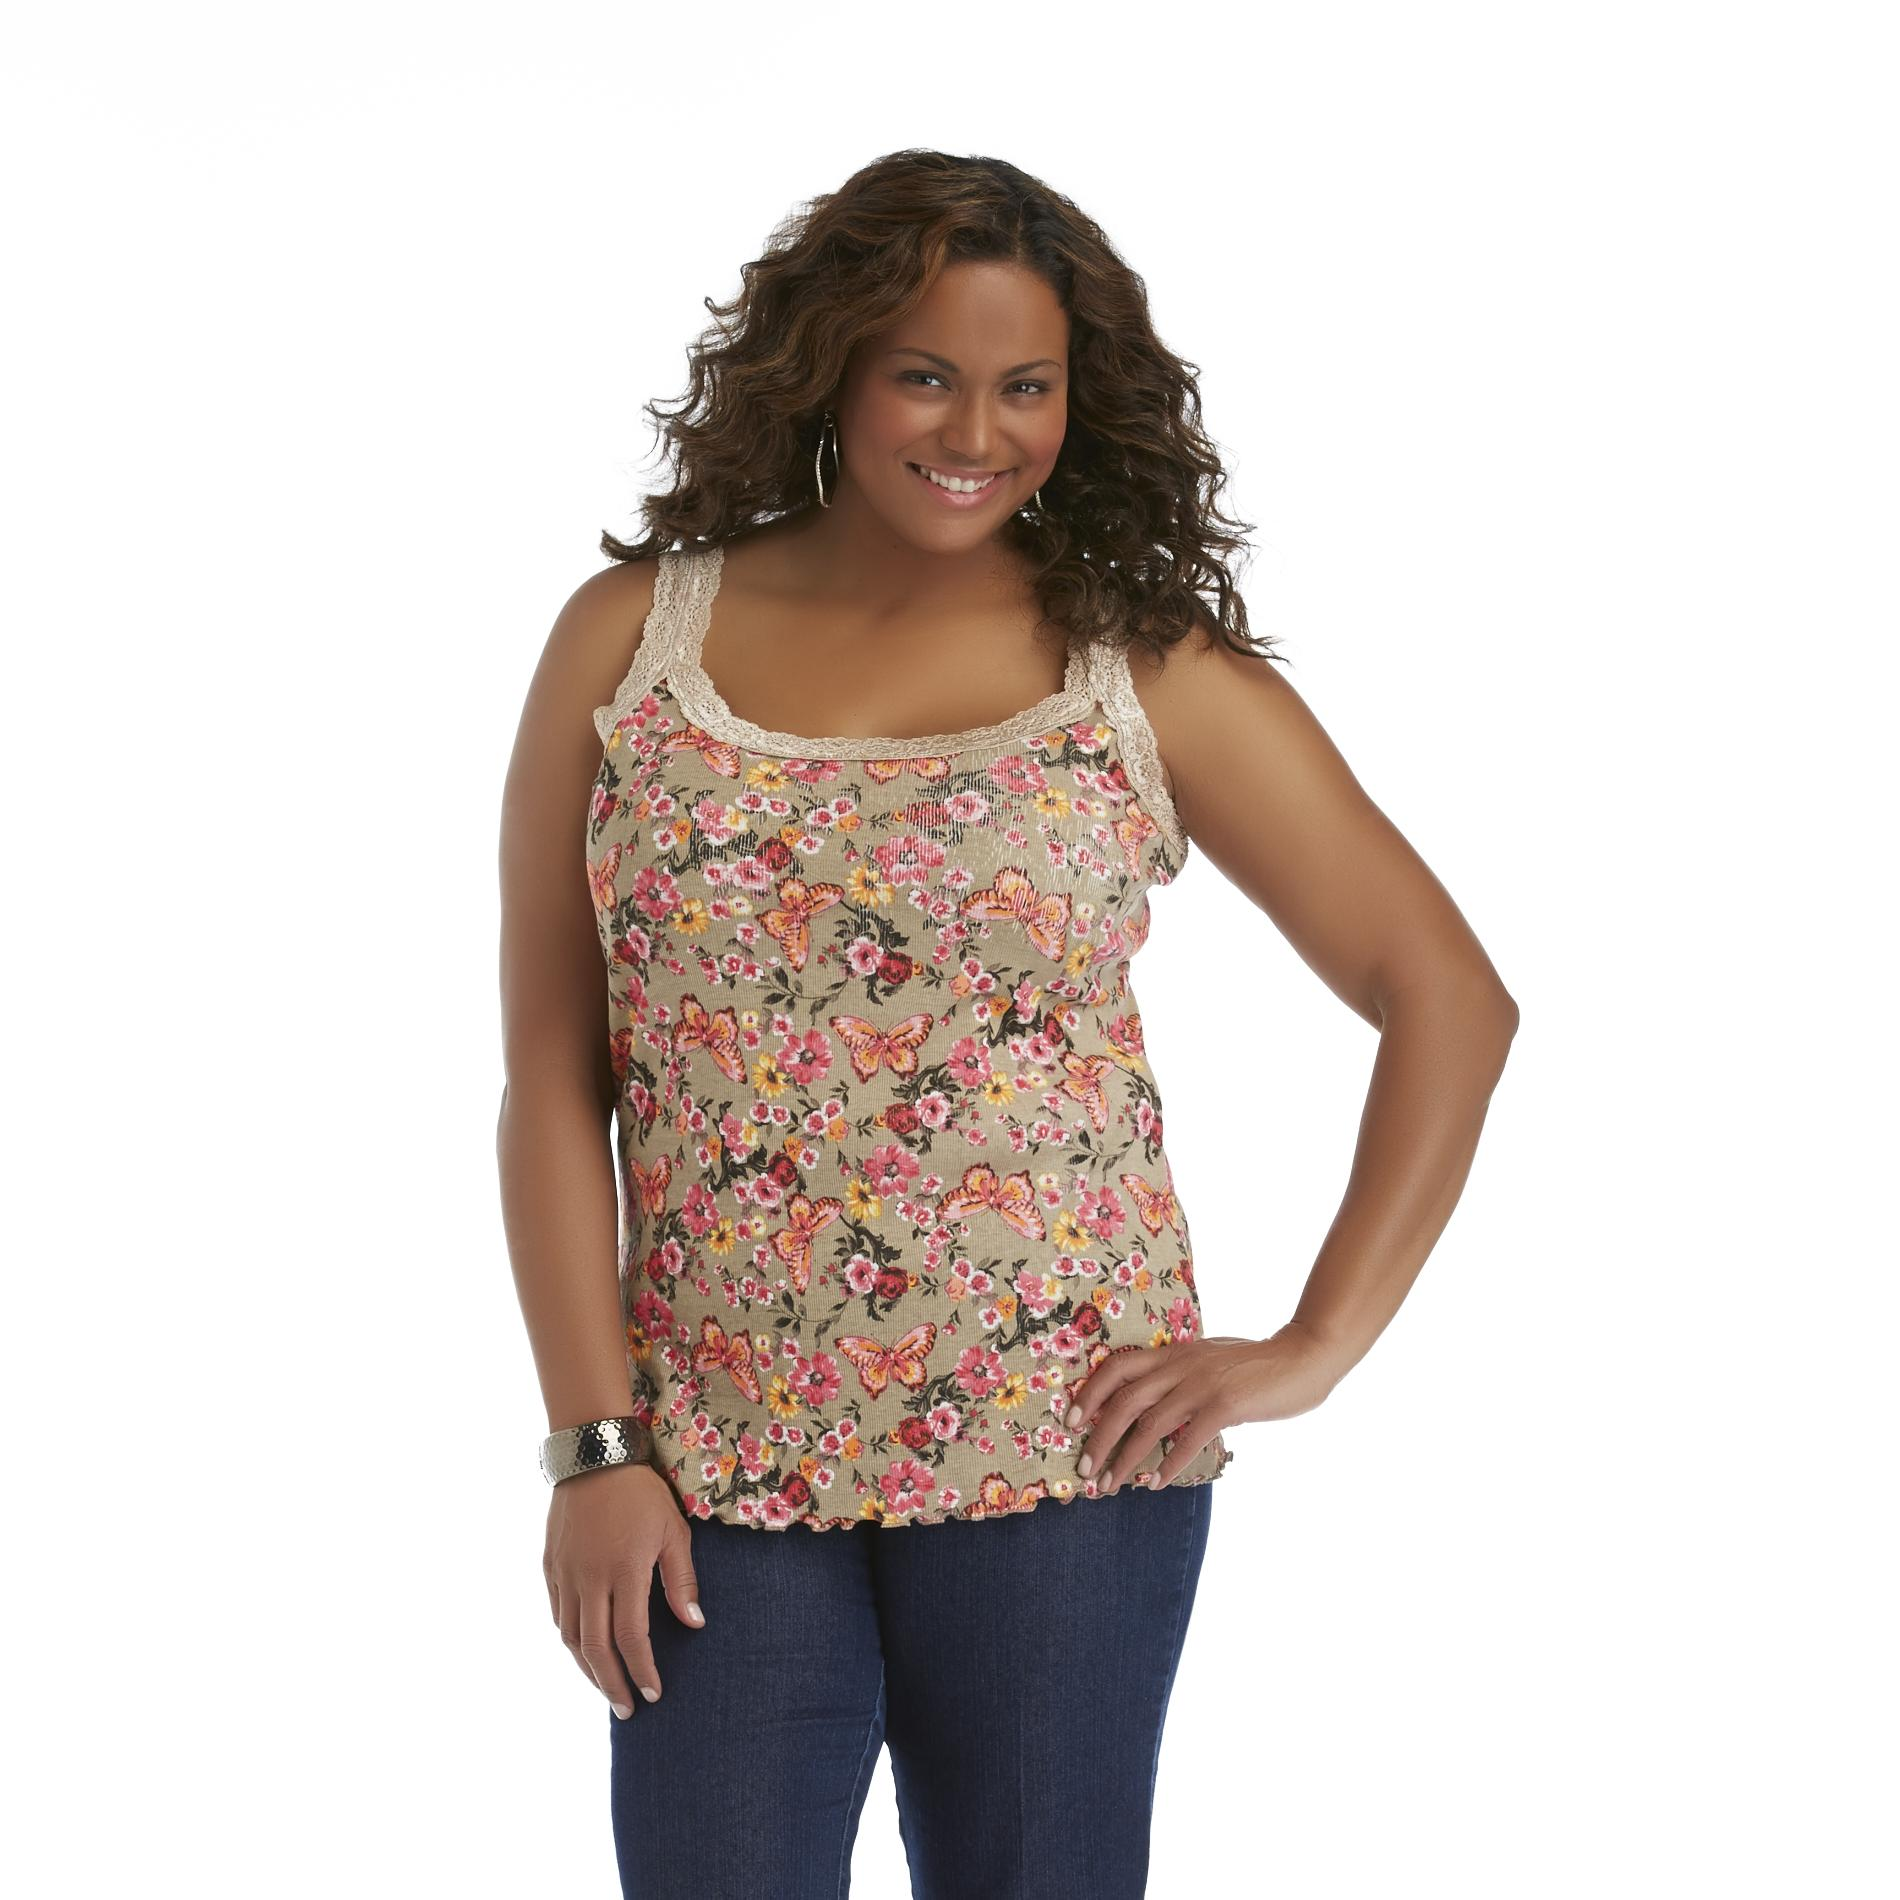 Basic Editions Women's Plus Lace Trim Tank - Butterflies & Floral at Kmart.com